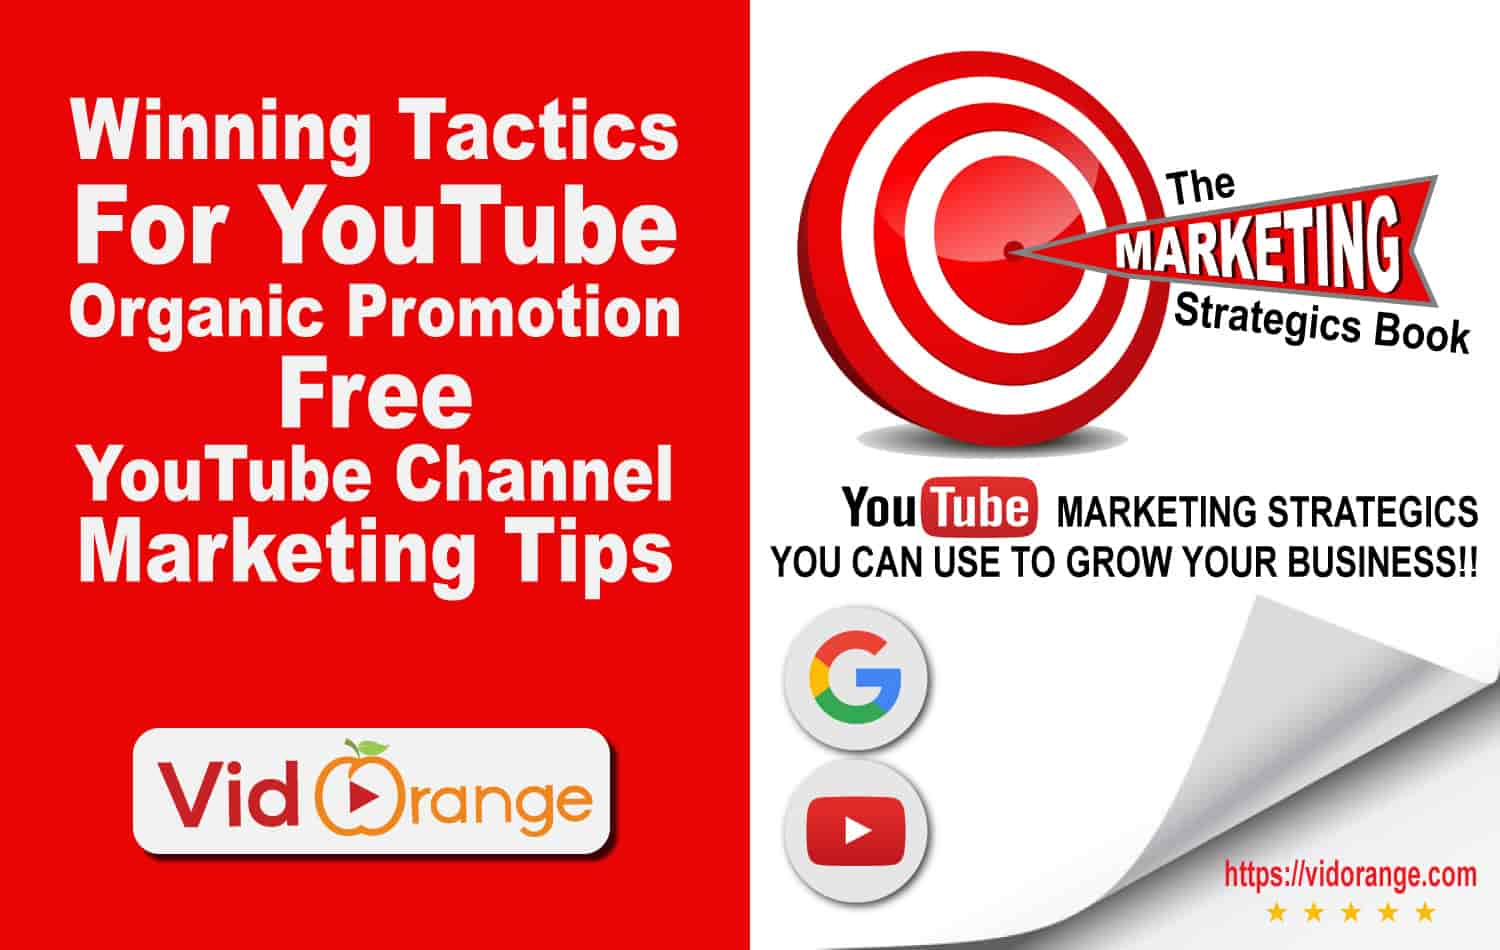 Winning Tactics for YouTube Organic Promotion | Free YouTube Channel Marketing Tips